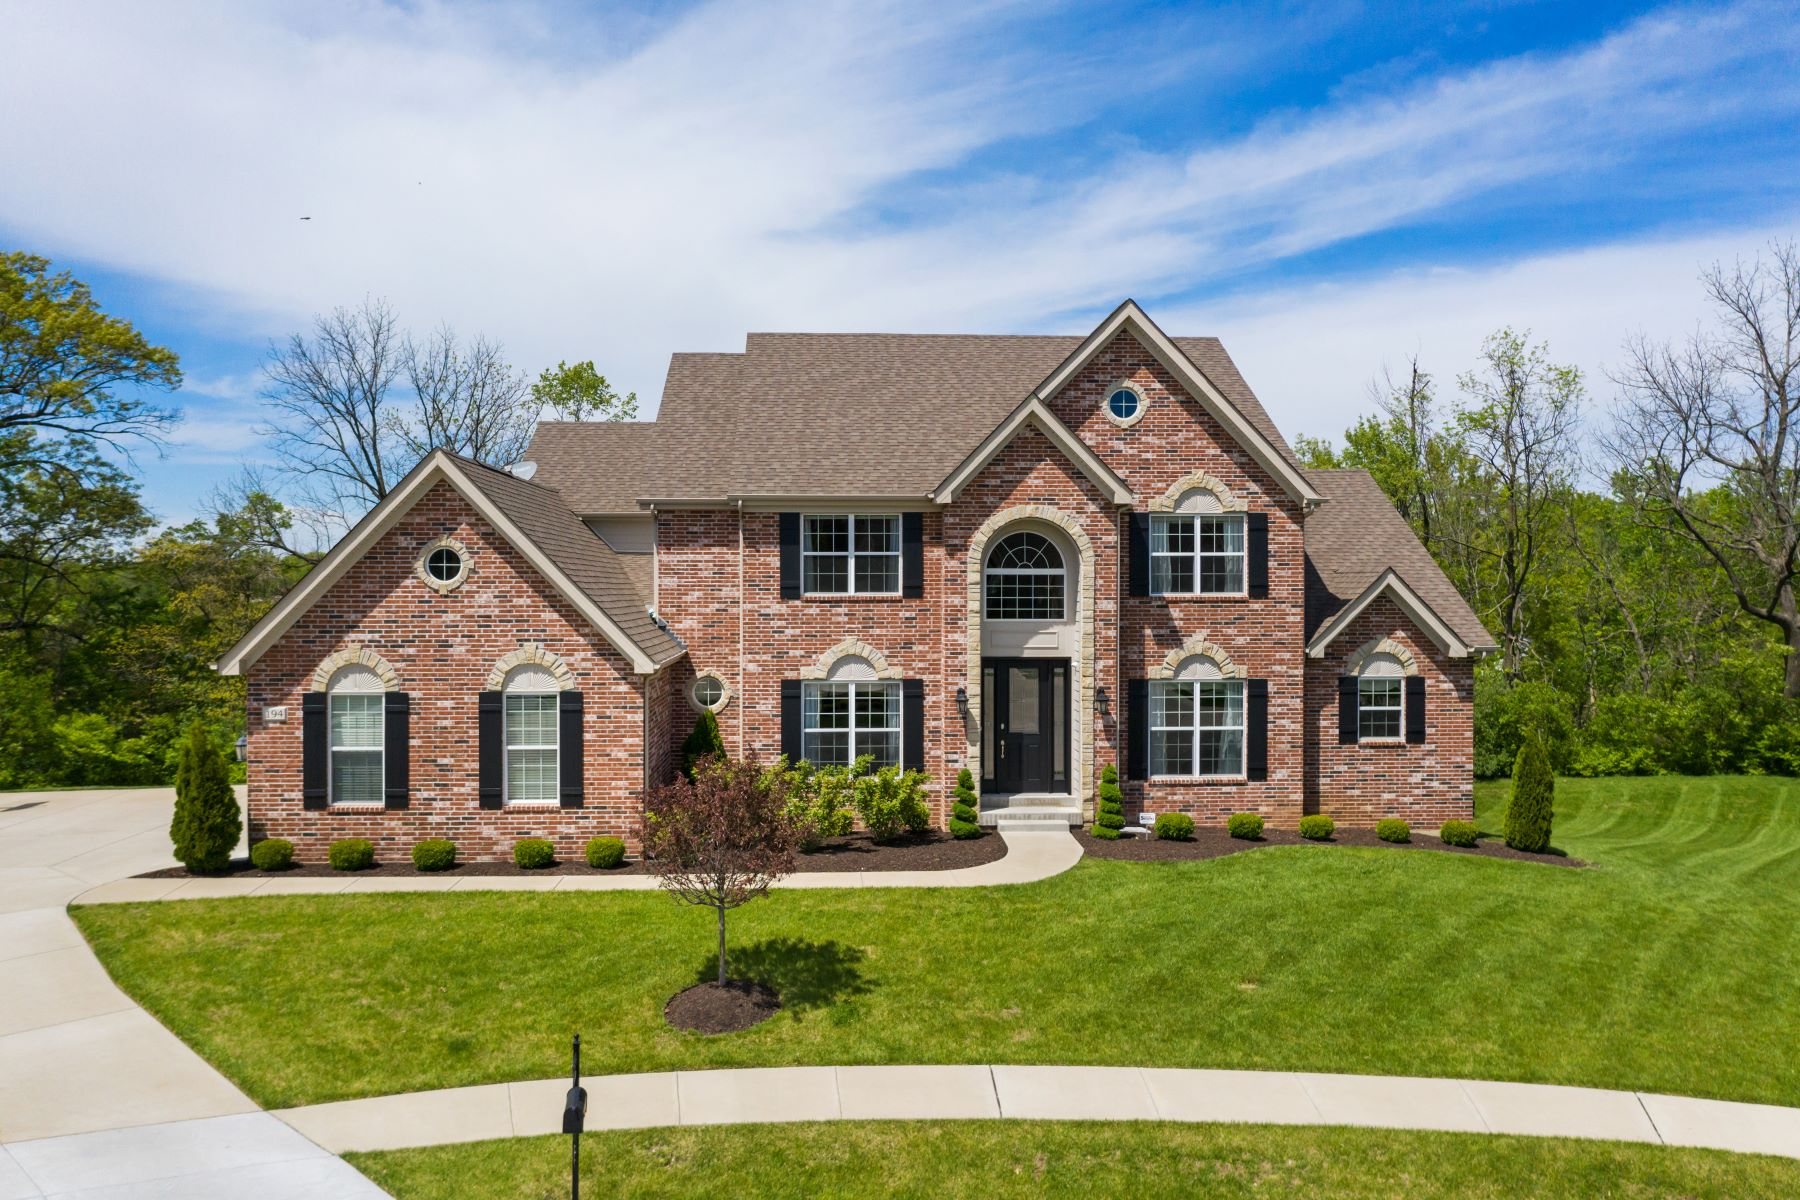 Single Family Homes for Sale at Exceptional Colonial Brick & Stone Home 194 Belle Maison Court Creve Coeur, Missouri 63141 United States